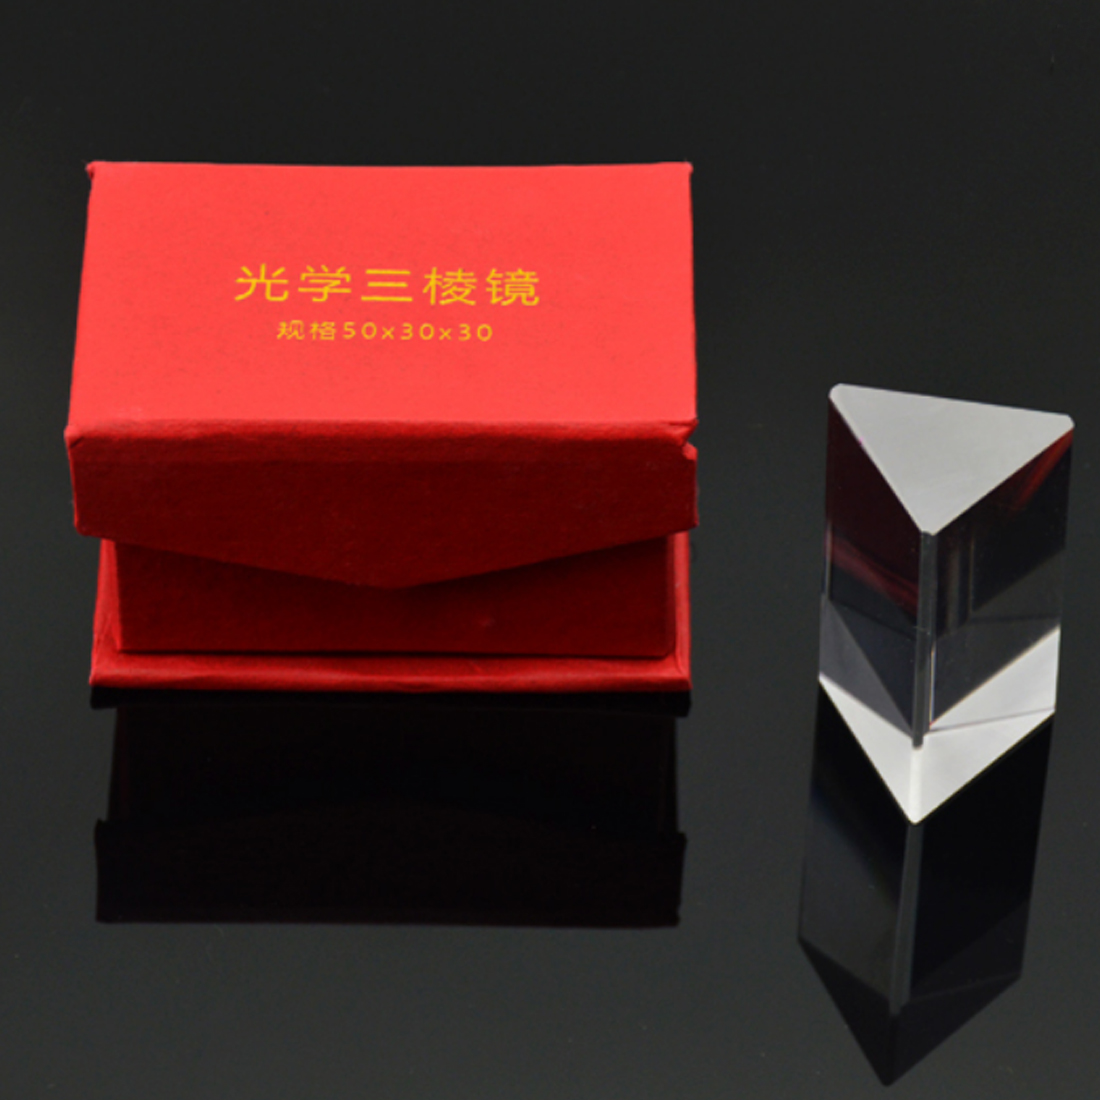 180 mm Large Glass Equilateral Triangular Prism for Teaching of Optics and Photo Effects with Gift Box